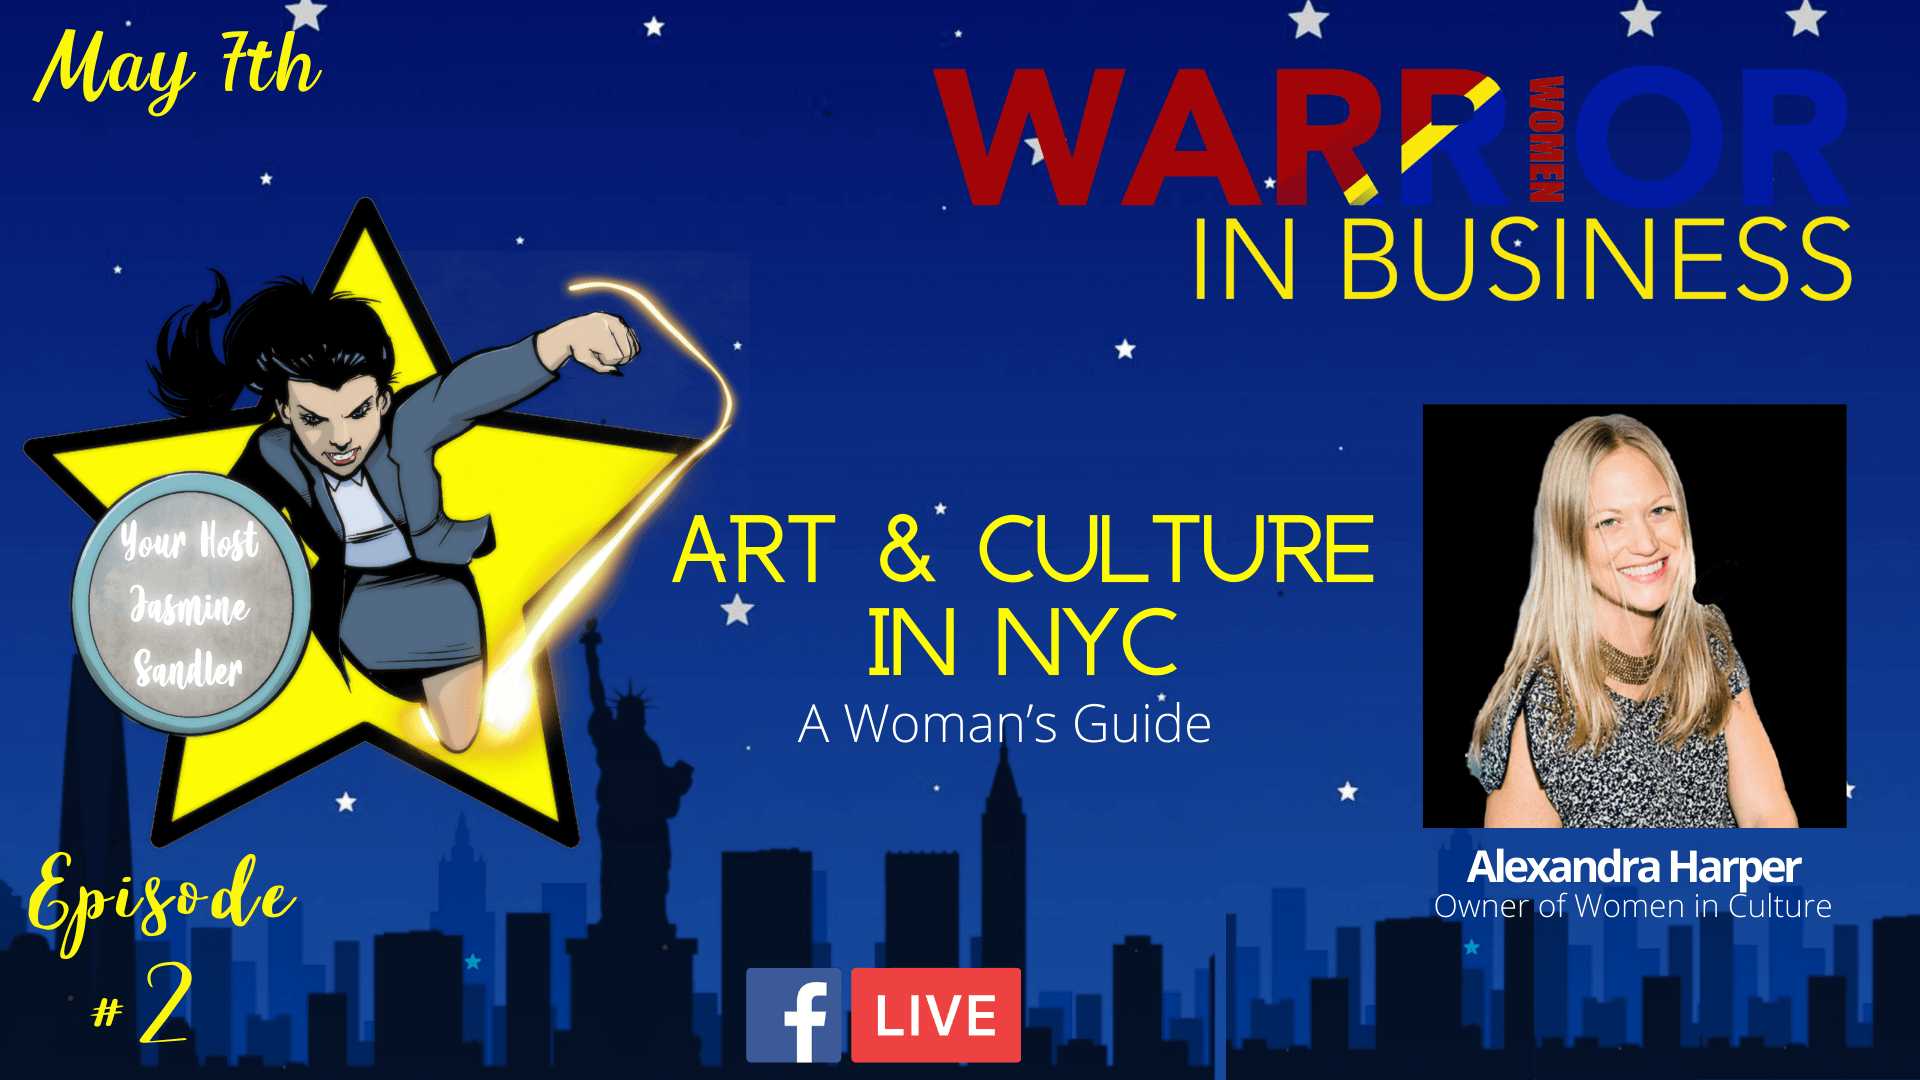 Episode 2 – Art & Culture In NYC: A Woman's Guide